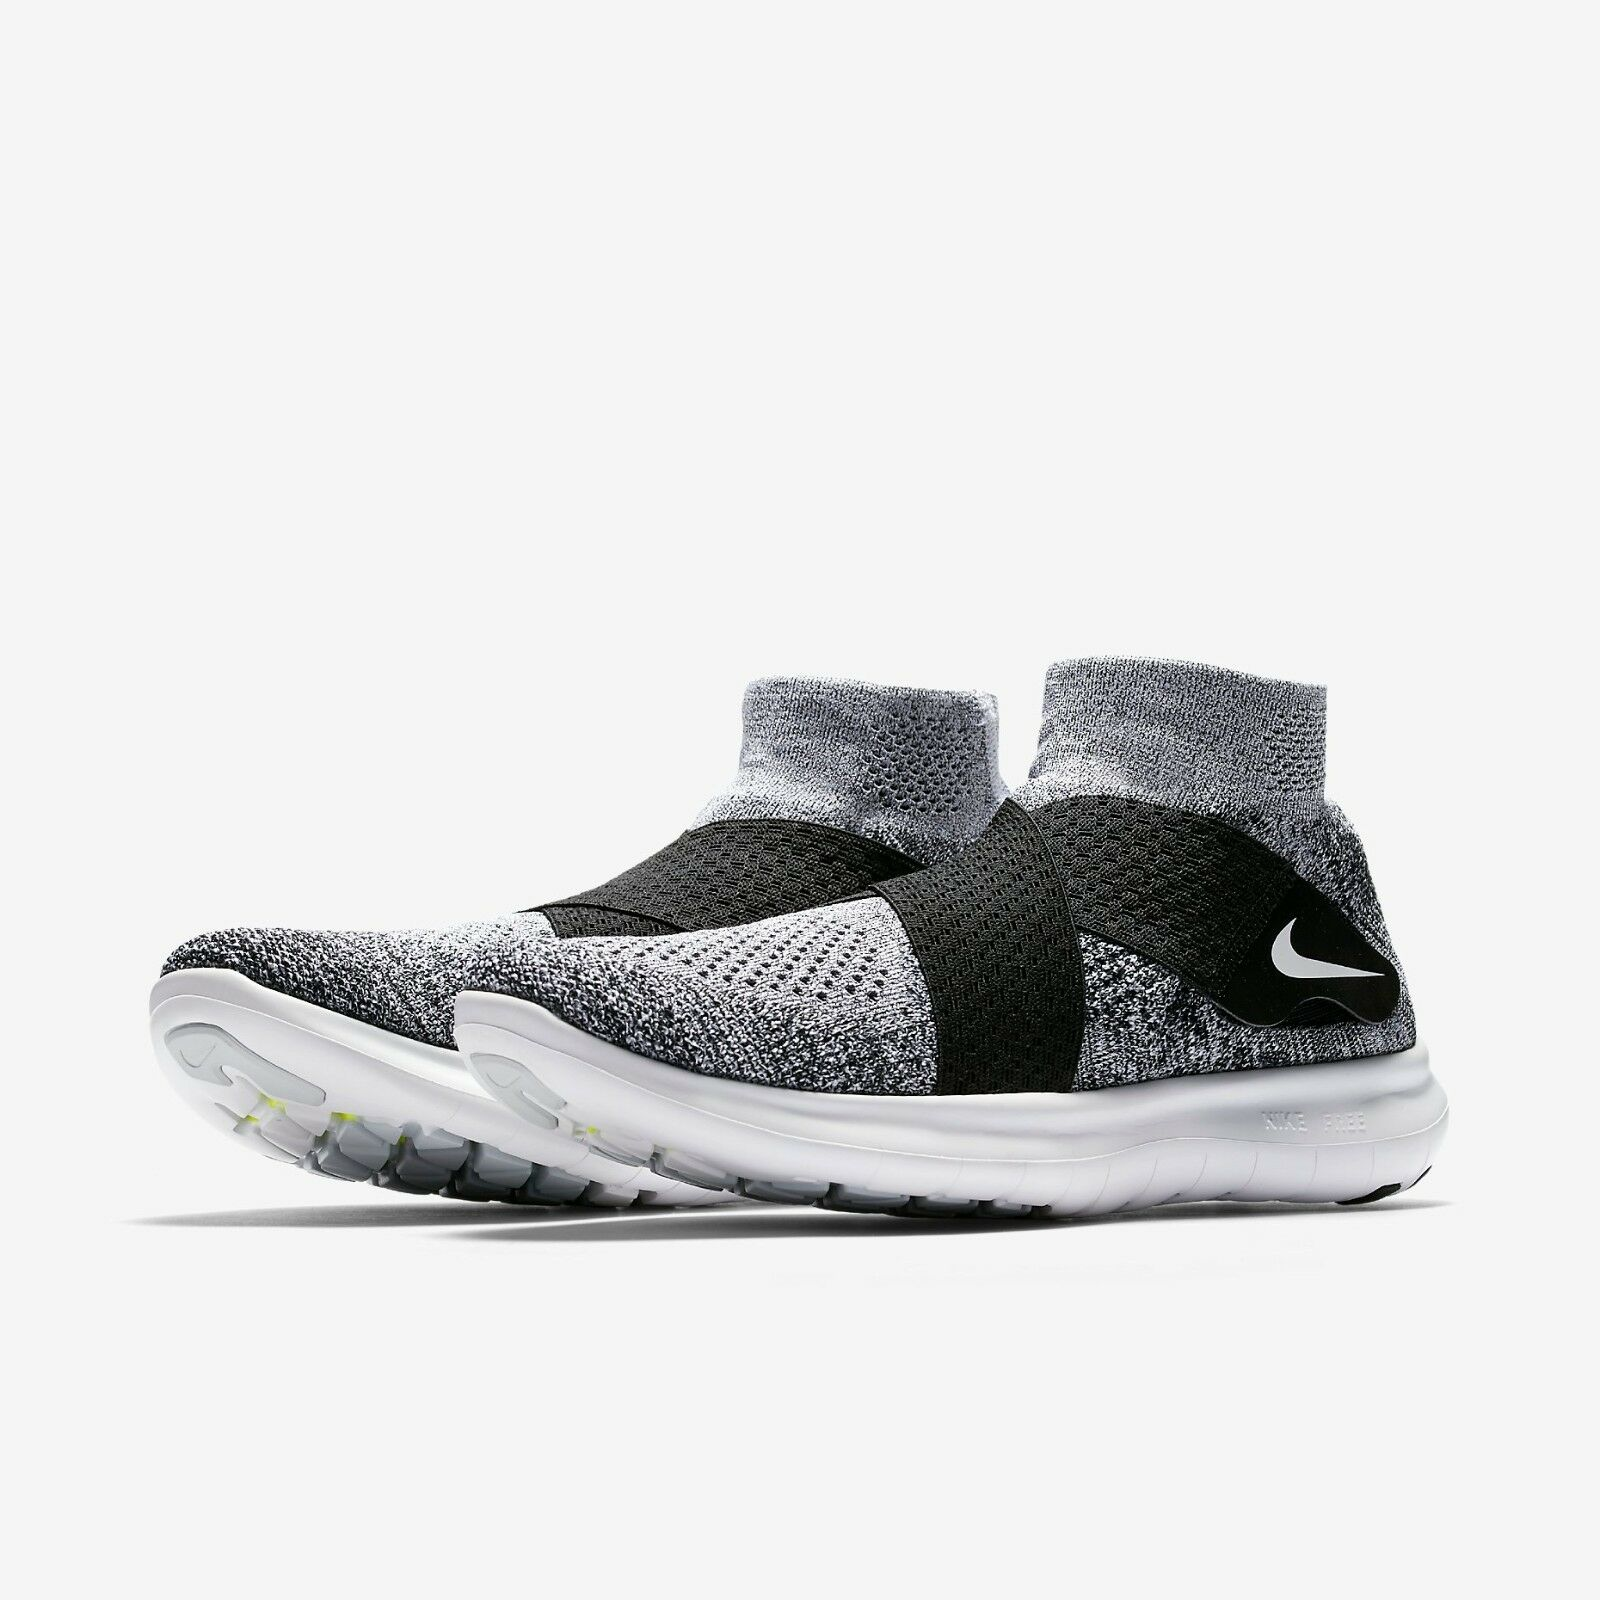 Men's New Authentic Nike Free RN Motion Flyknit 2017 Running Shoes Sizes  7-14